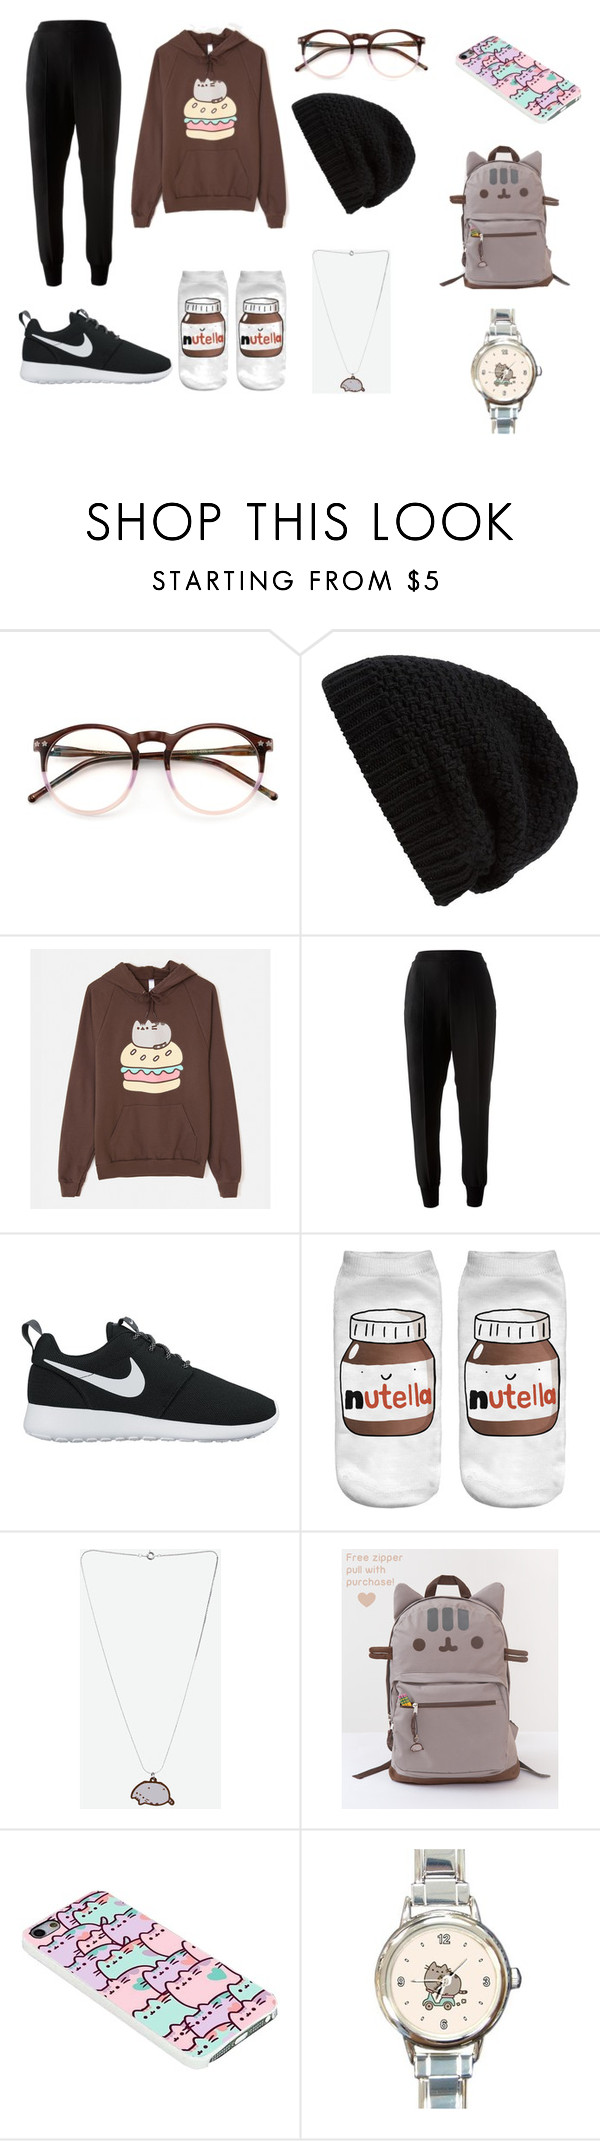 """""""What time is it? It's PUSHEEN TIME!"""" by lilykat004 on Polyvore featuring Wildfox, Rick Owens, Pusheen, STELLA McCARTNEY and NIKE"""